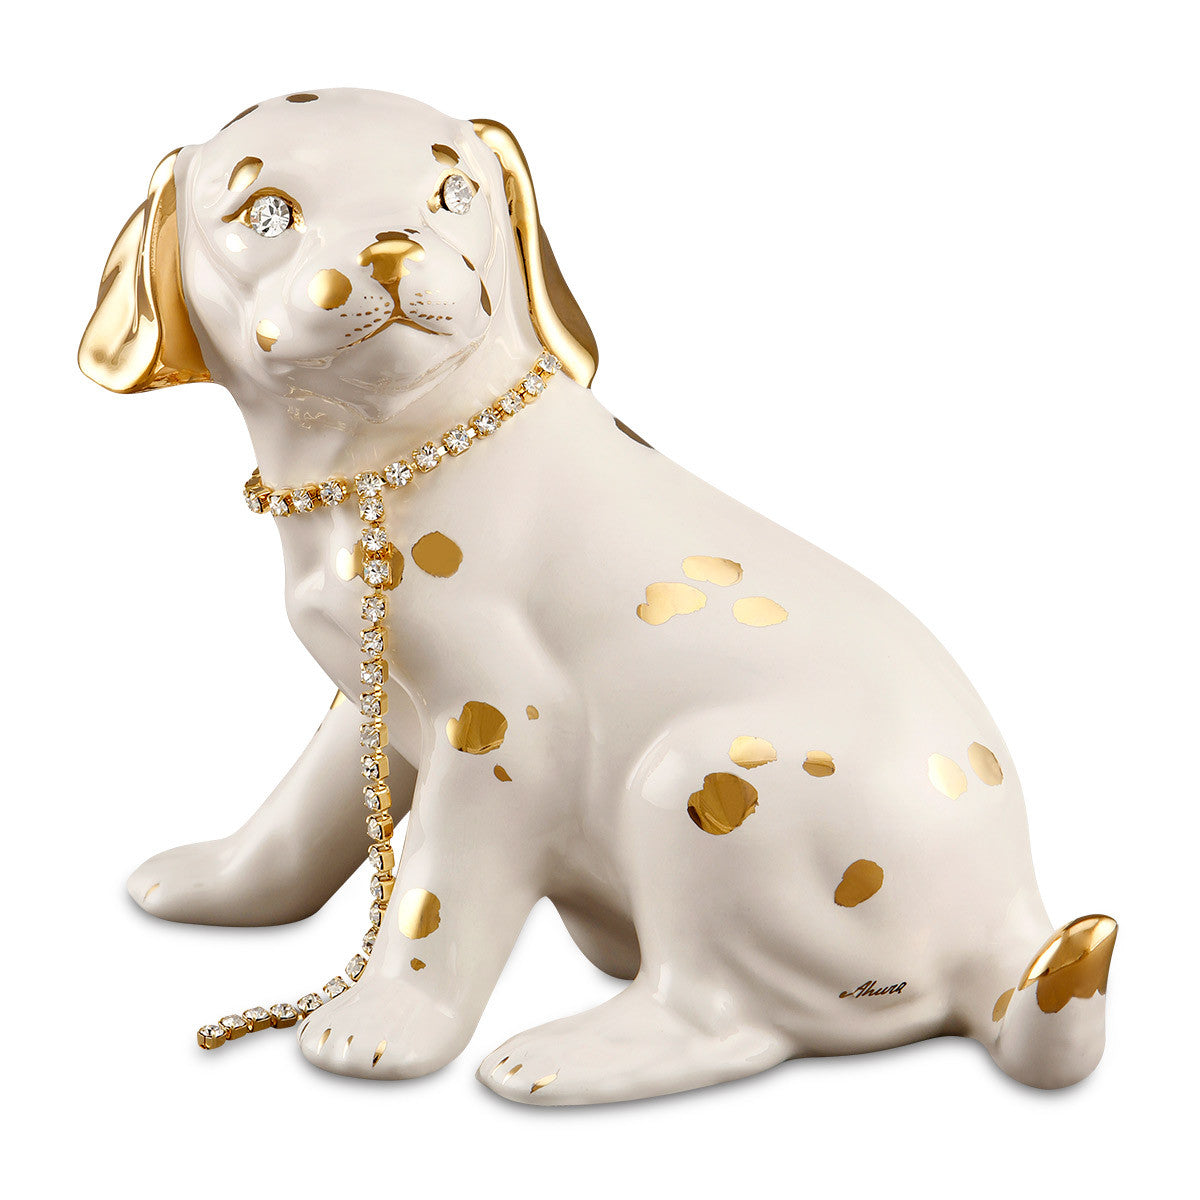 Ceramic baby beagle finished in 24kt gold